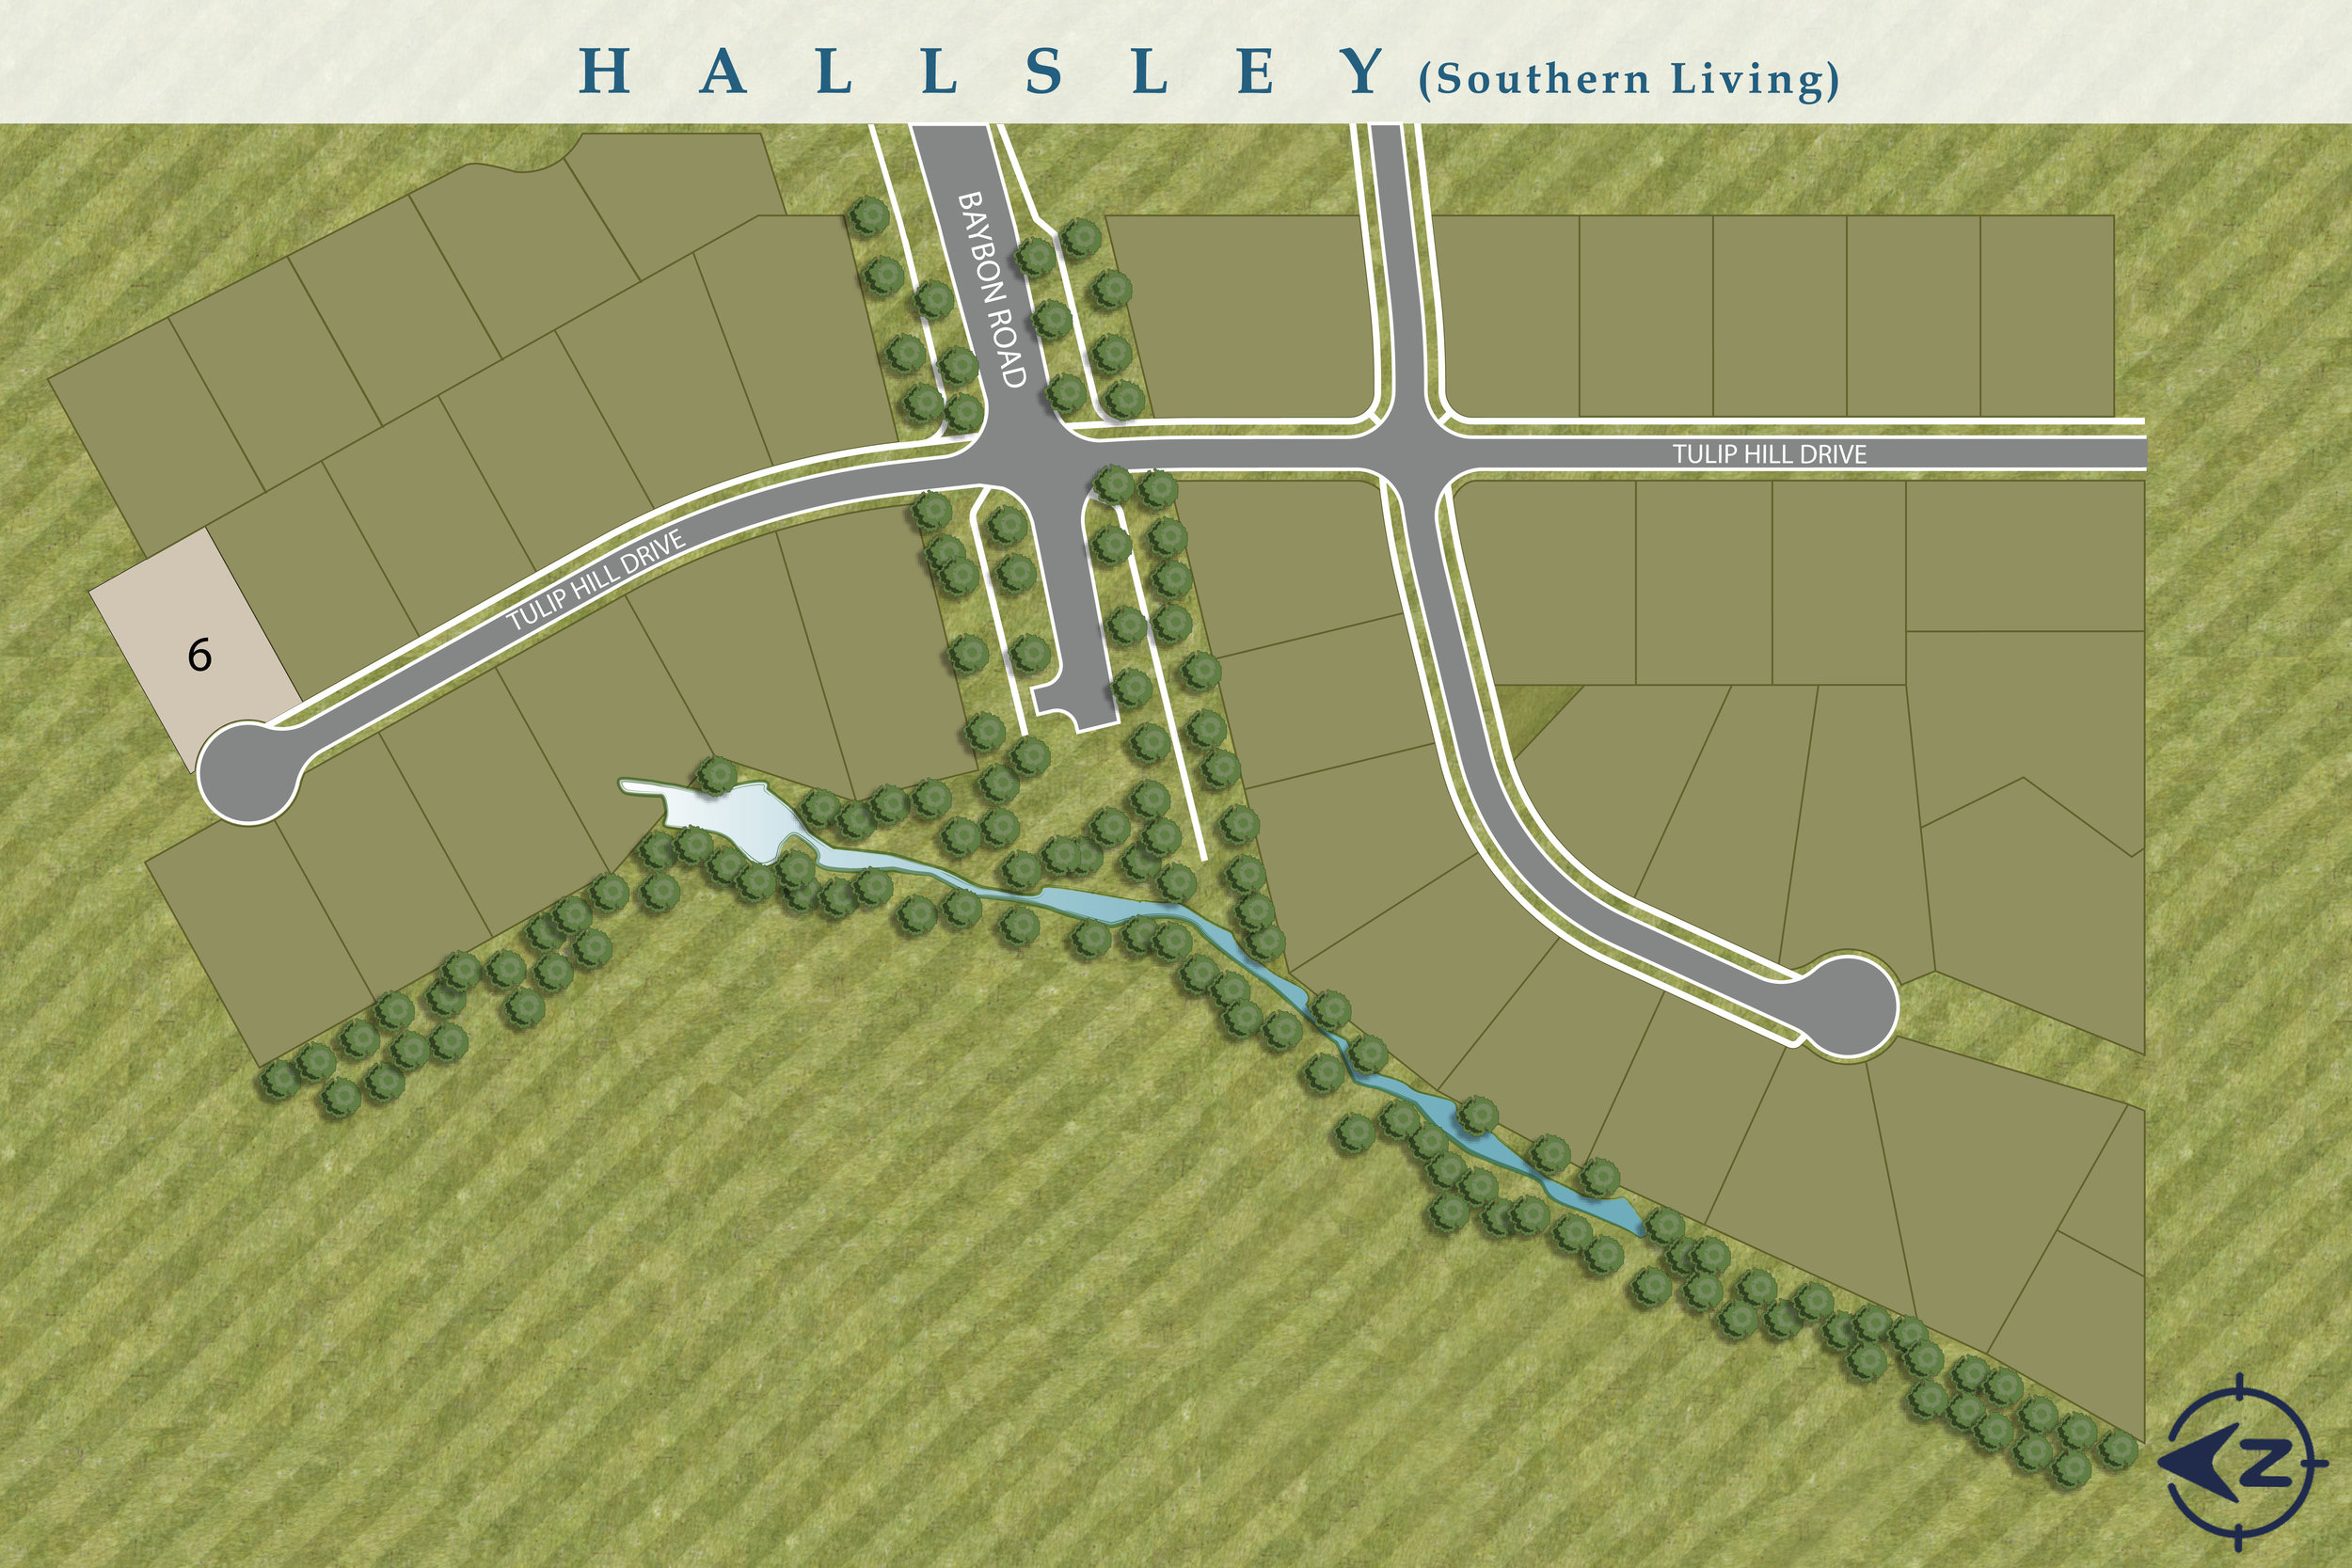 New Home Sites Available In Hallsley - Southern Living Section